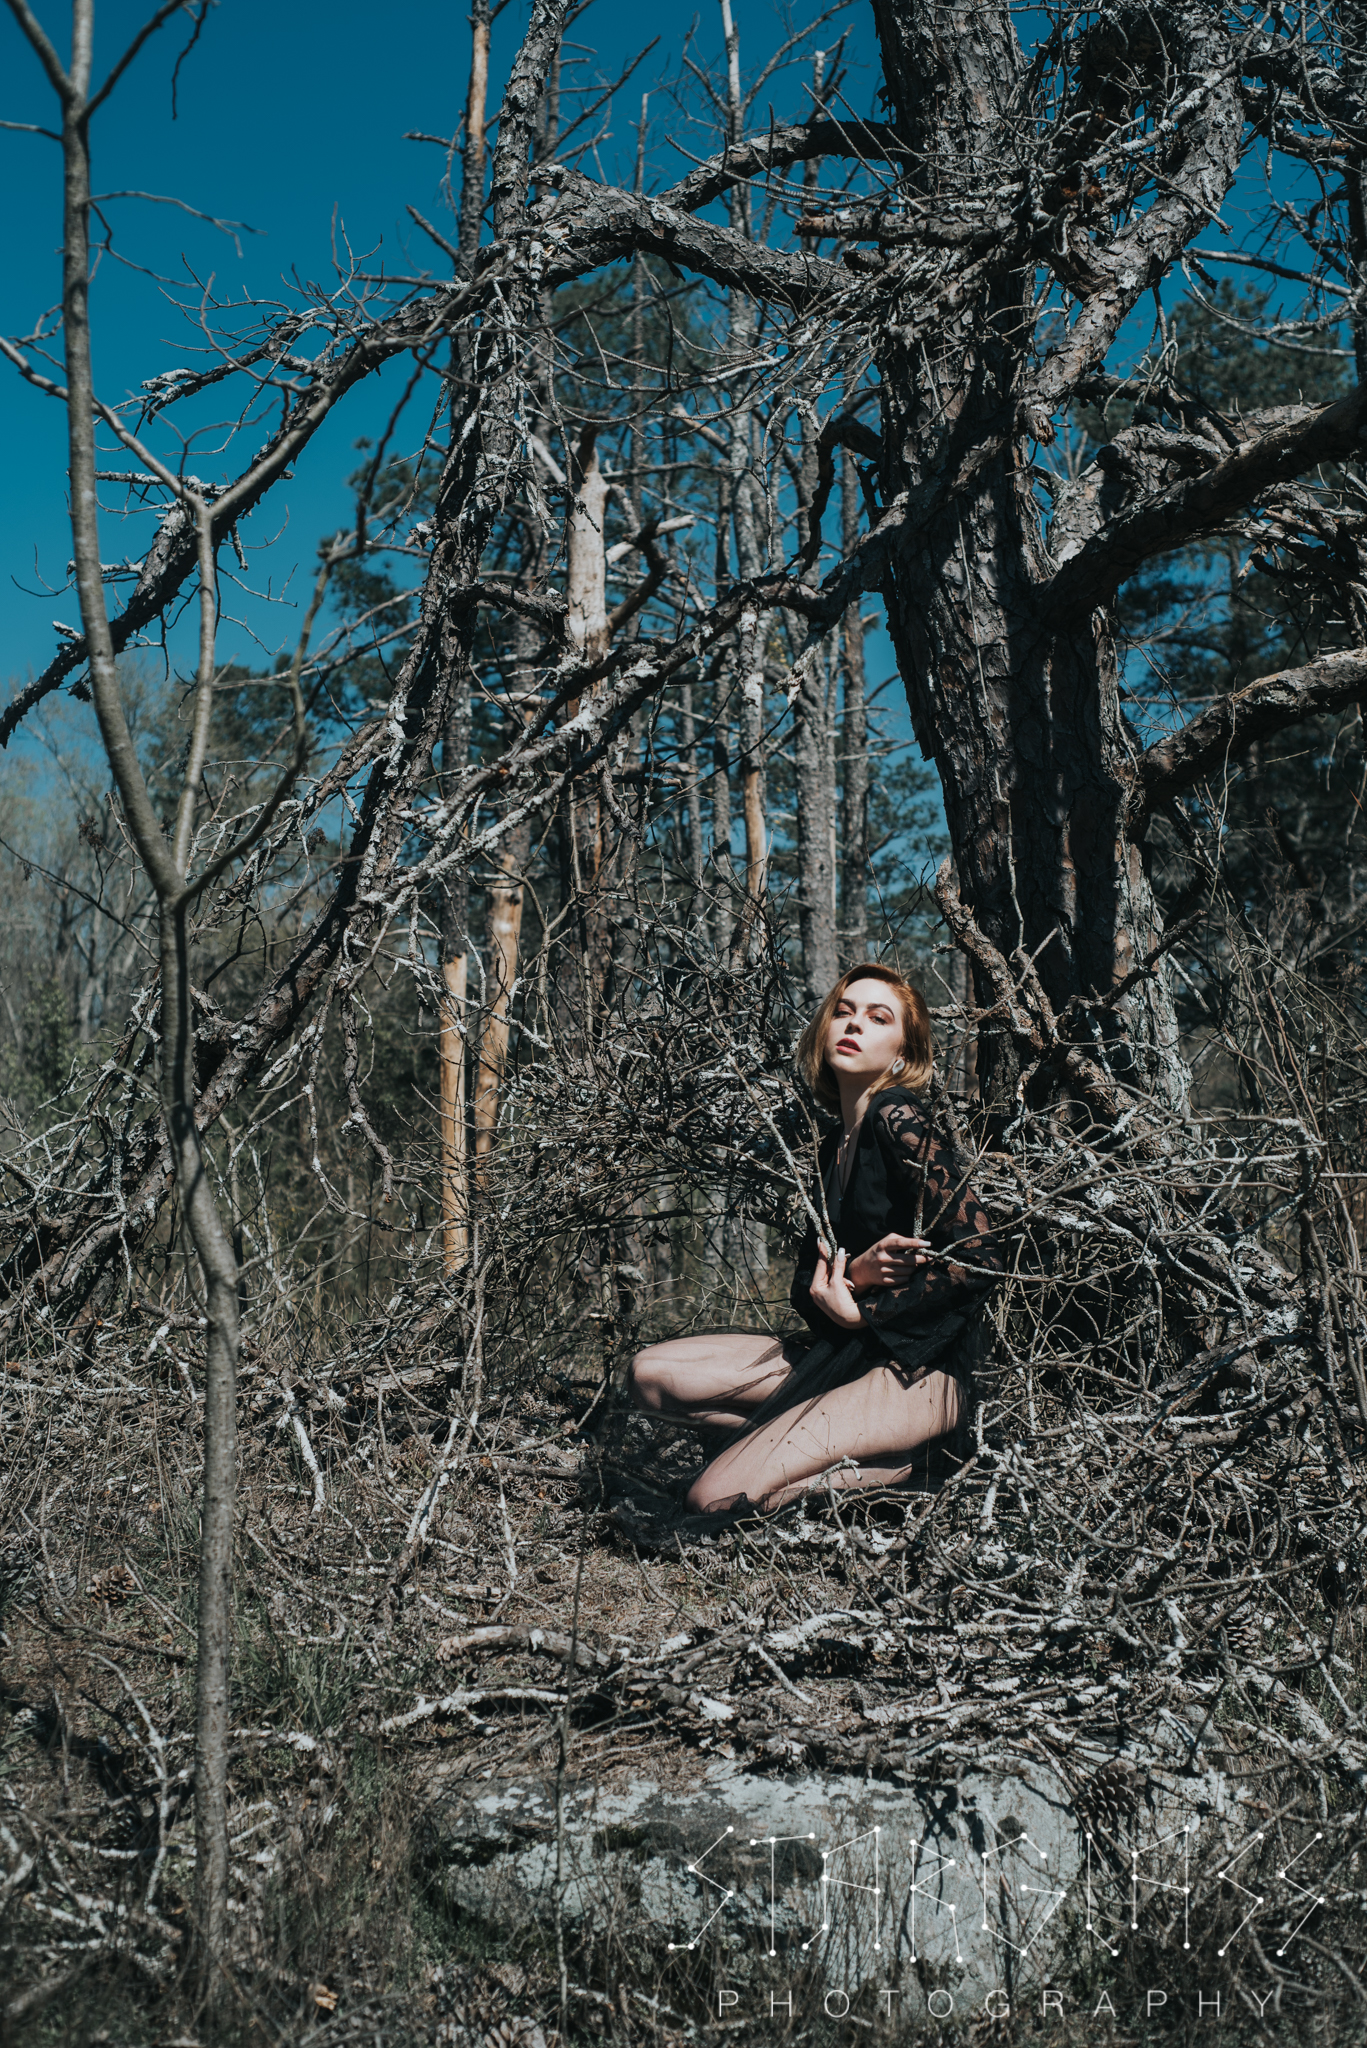 Ostara crouches among dead trees, surrounded by bare branches.